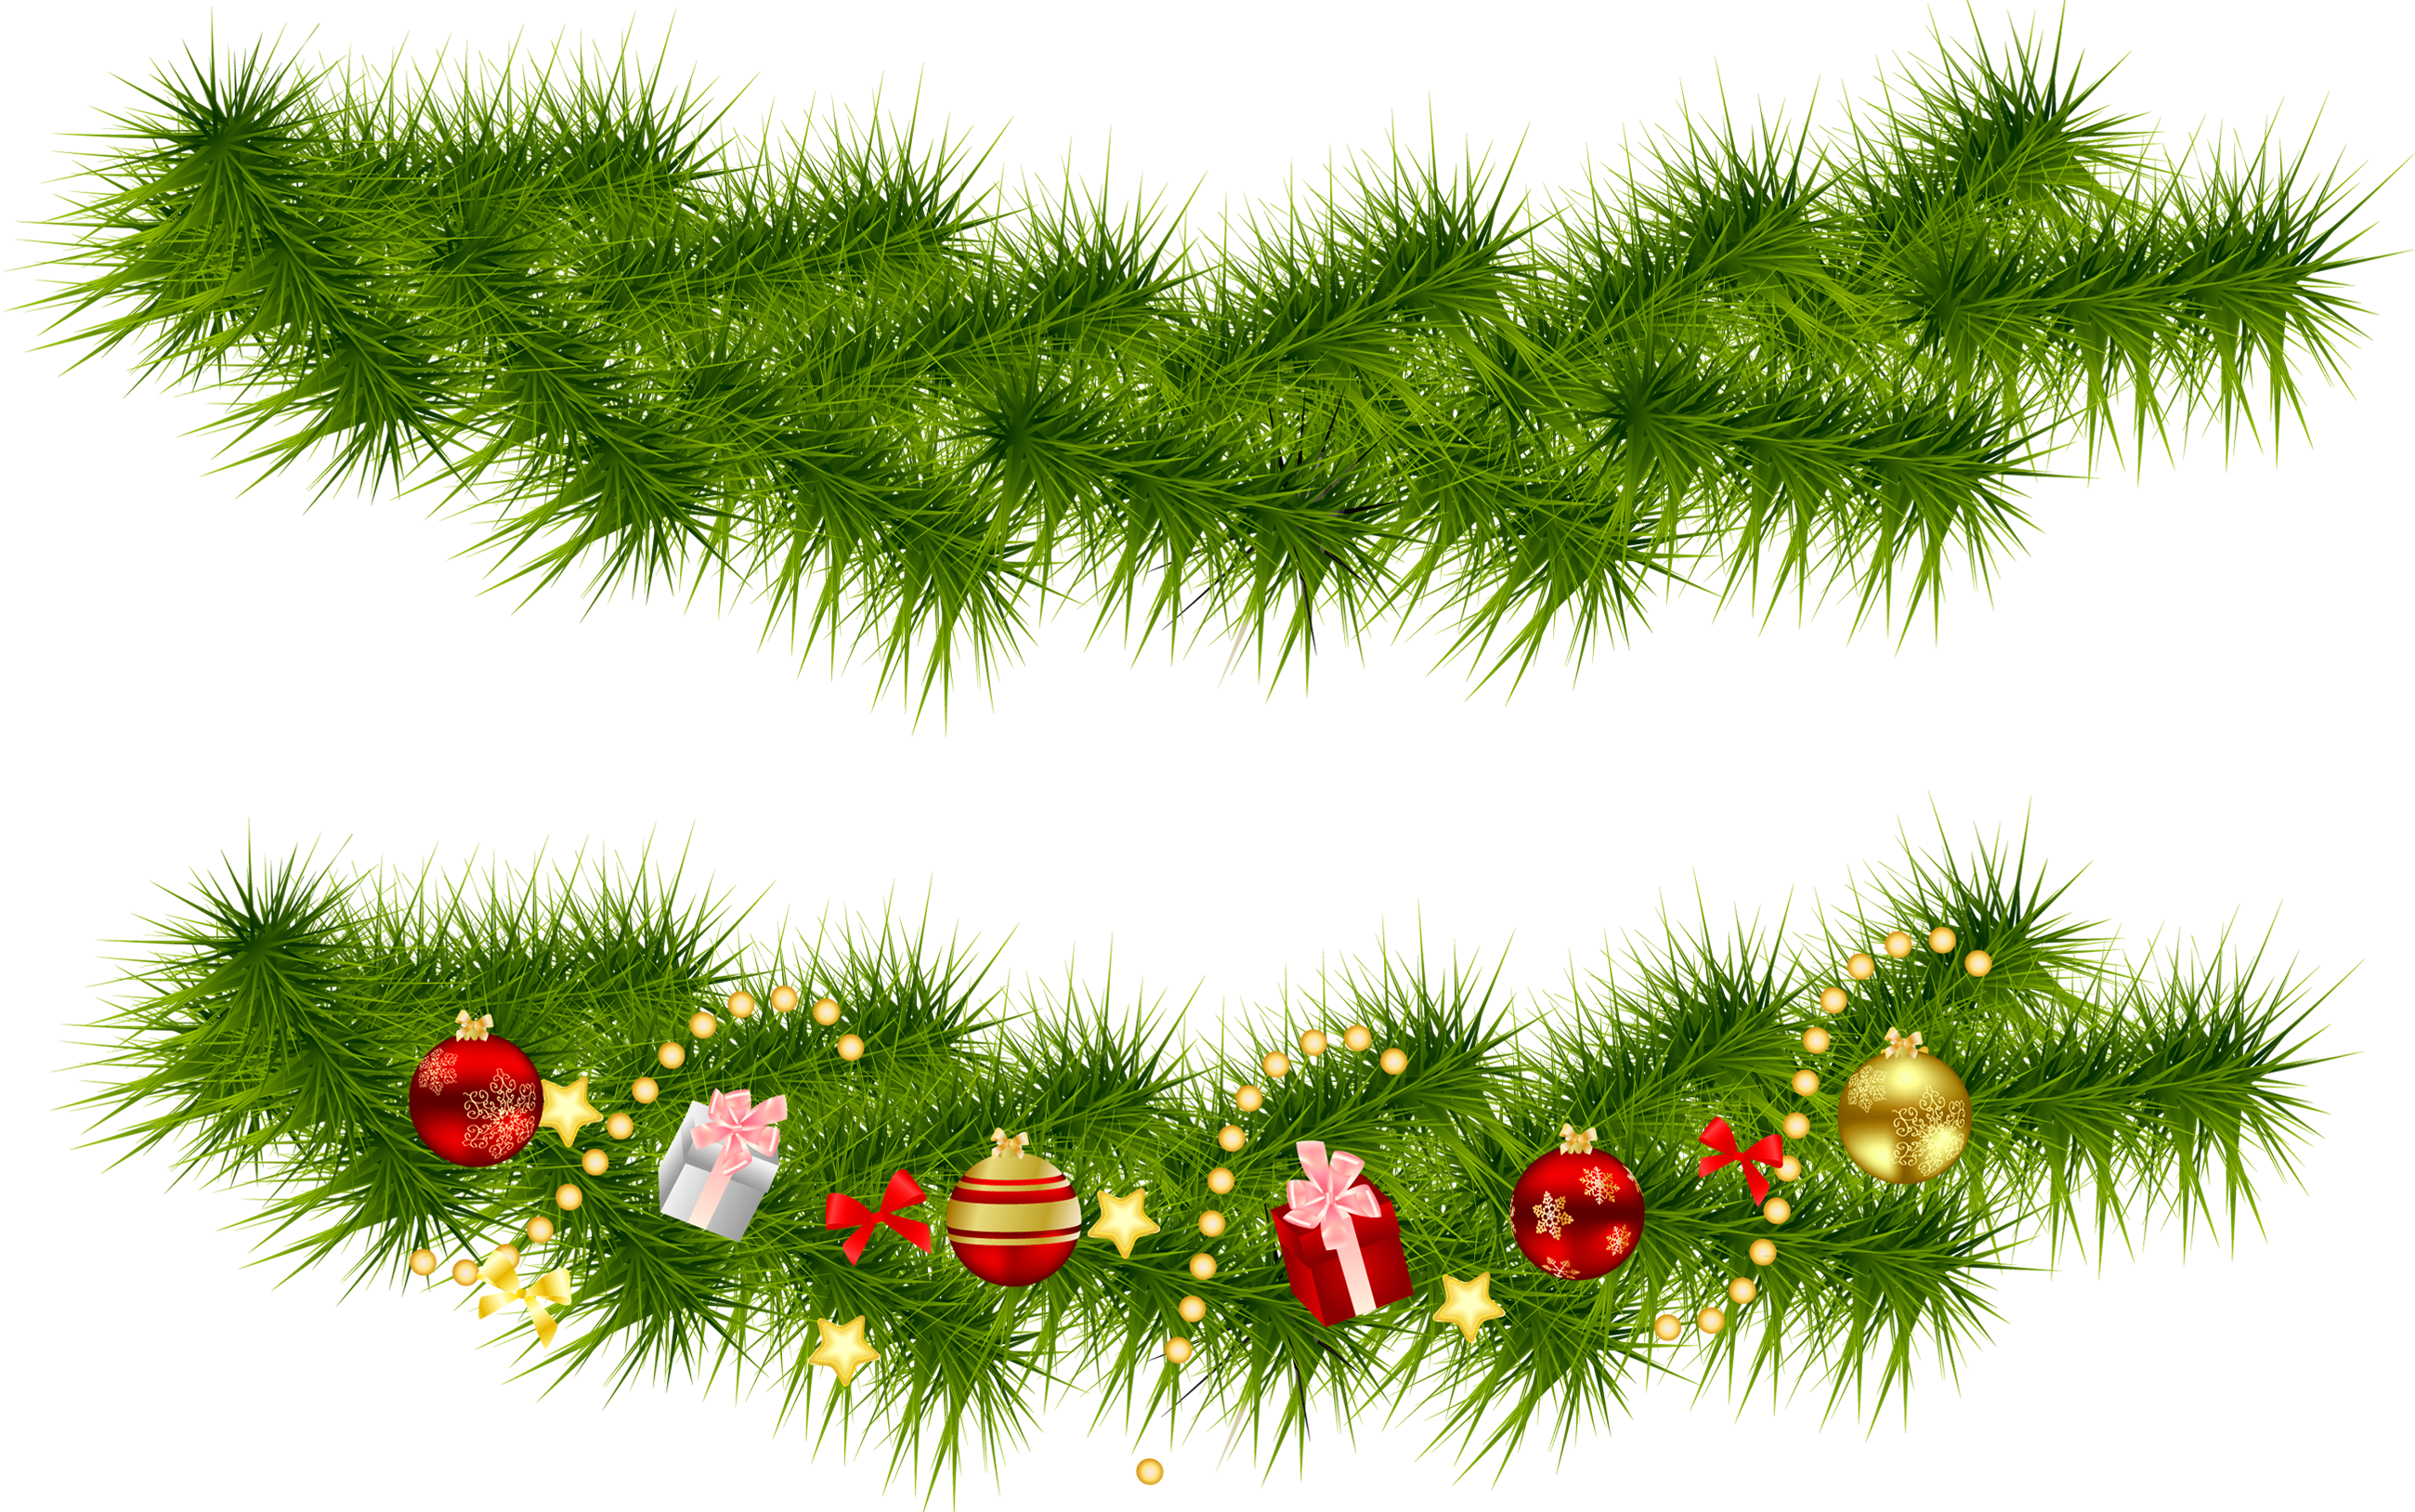 Christmas garland border transparent png. Pine garlands gallery yopriceville